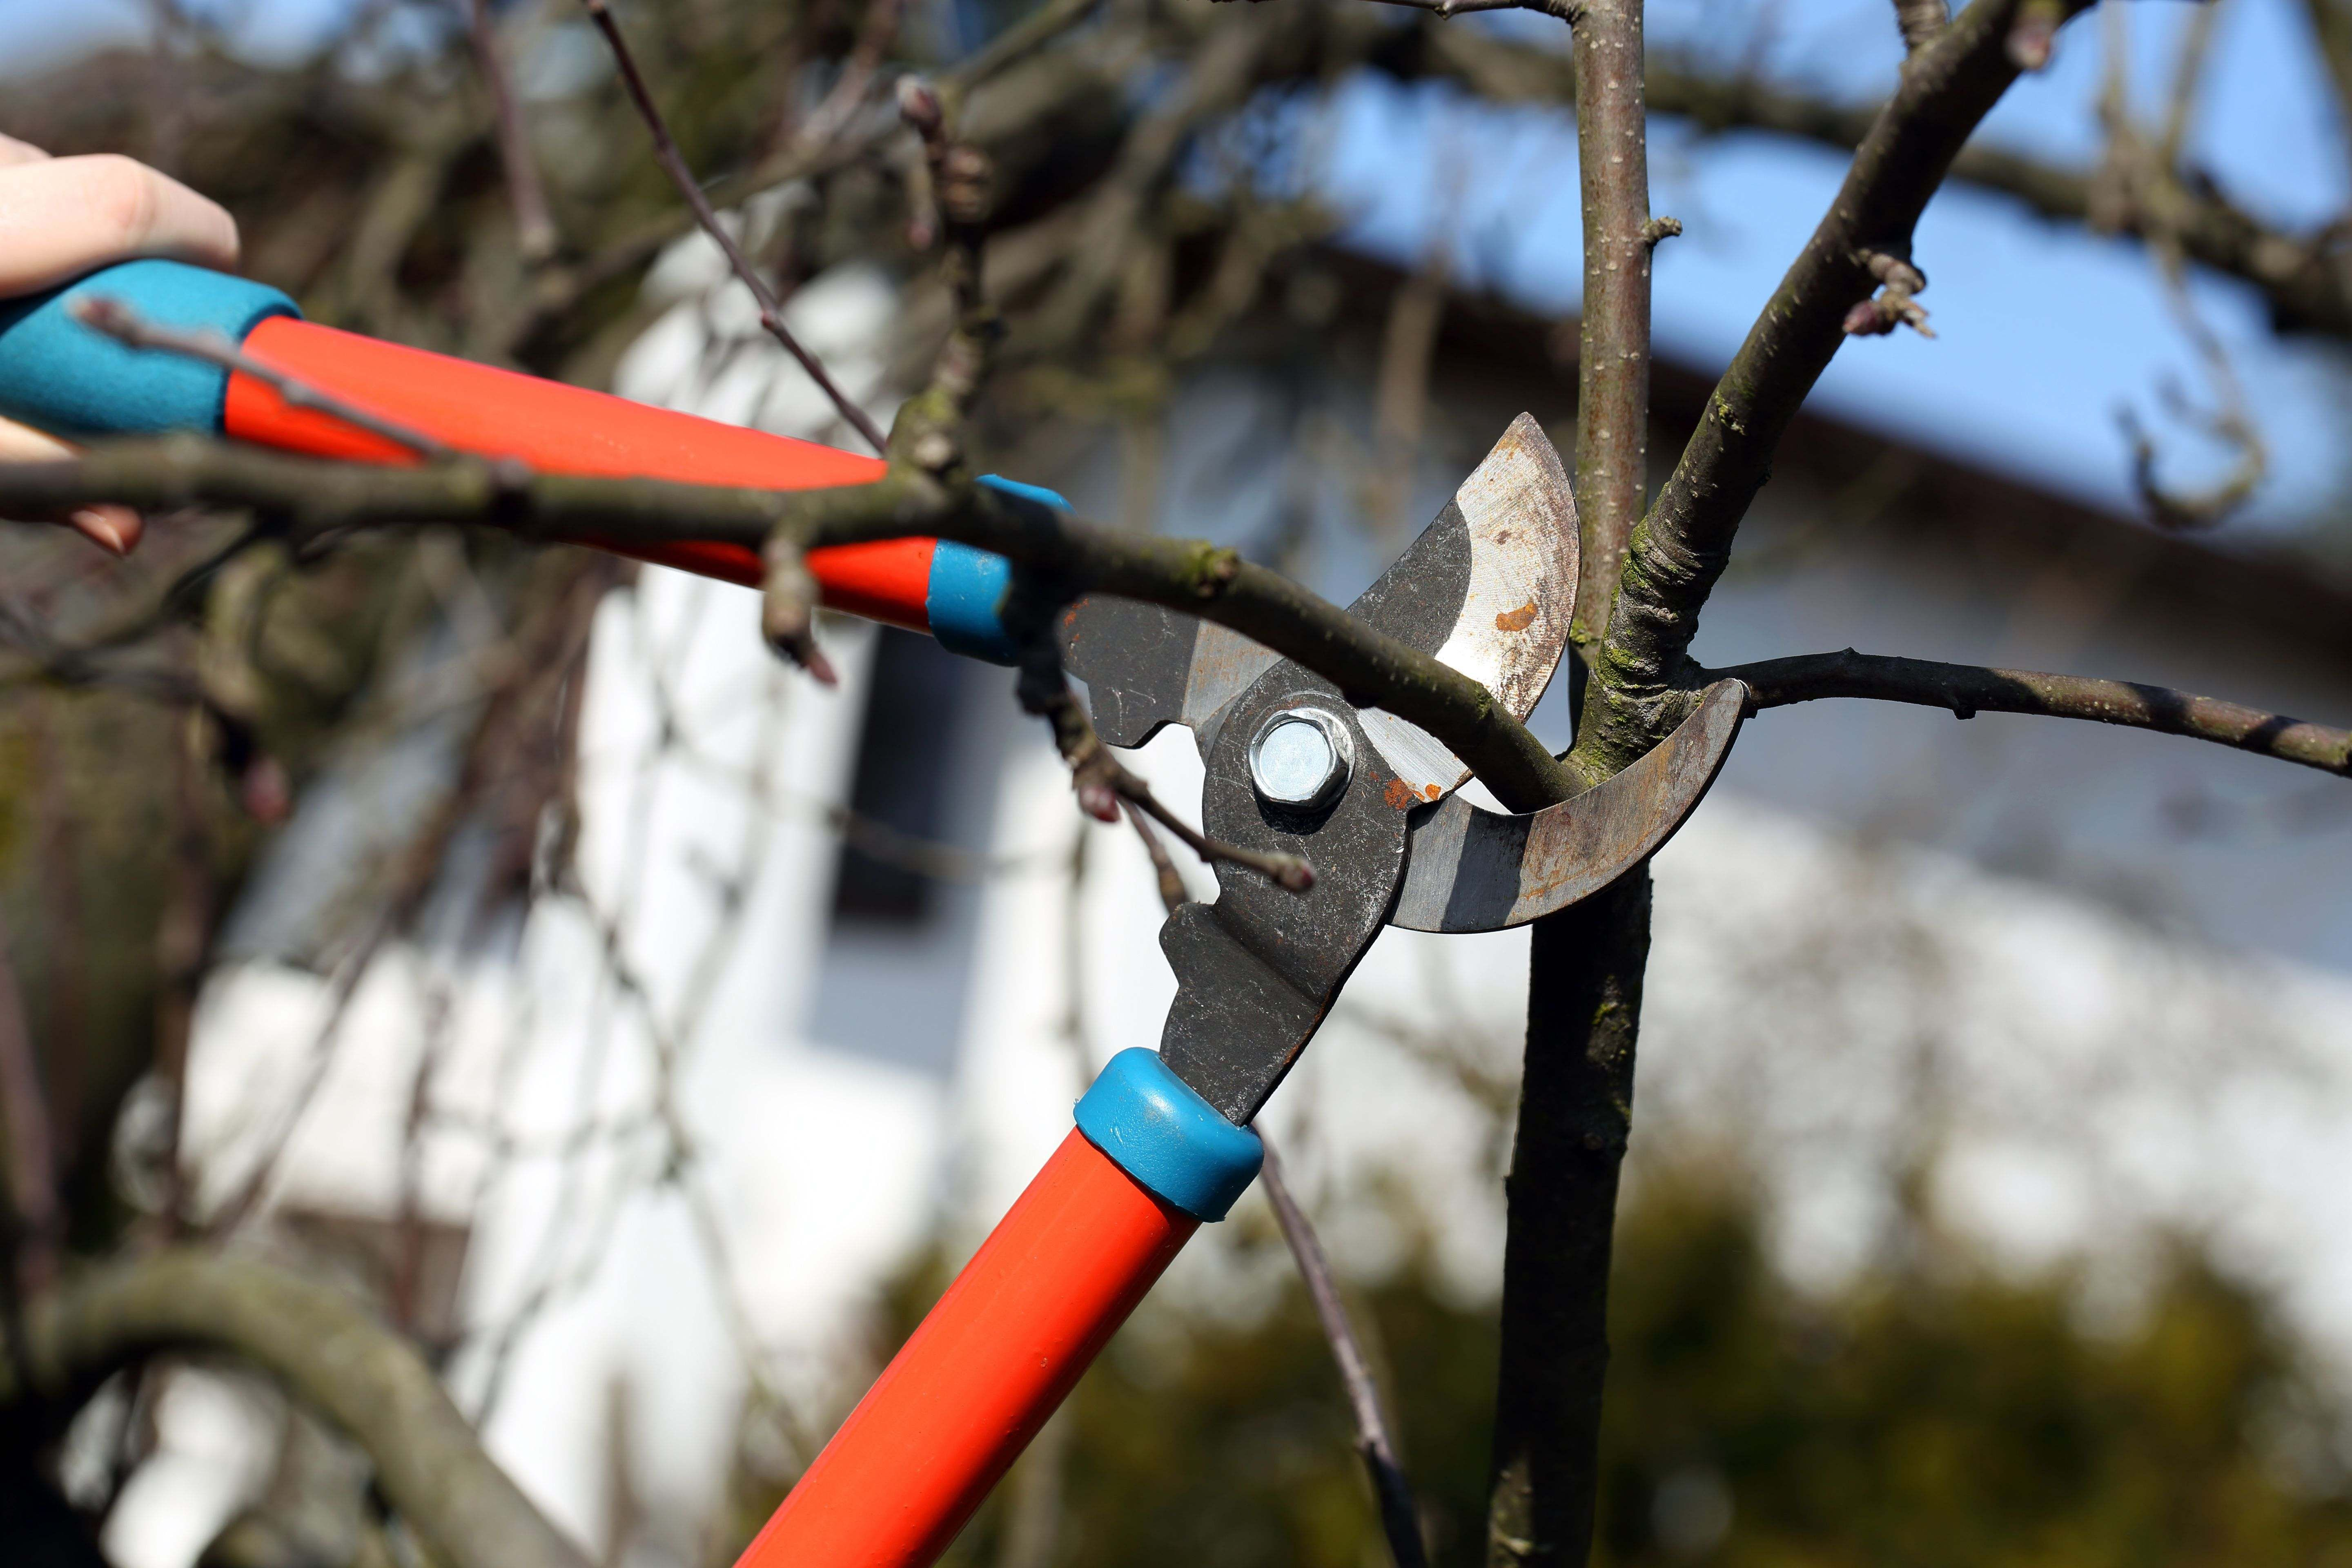 Branch cutter buying guide